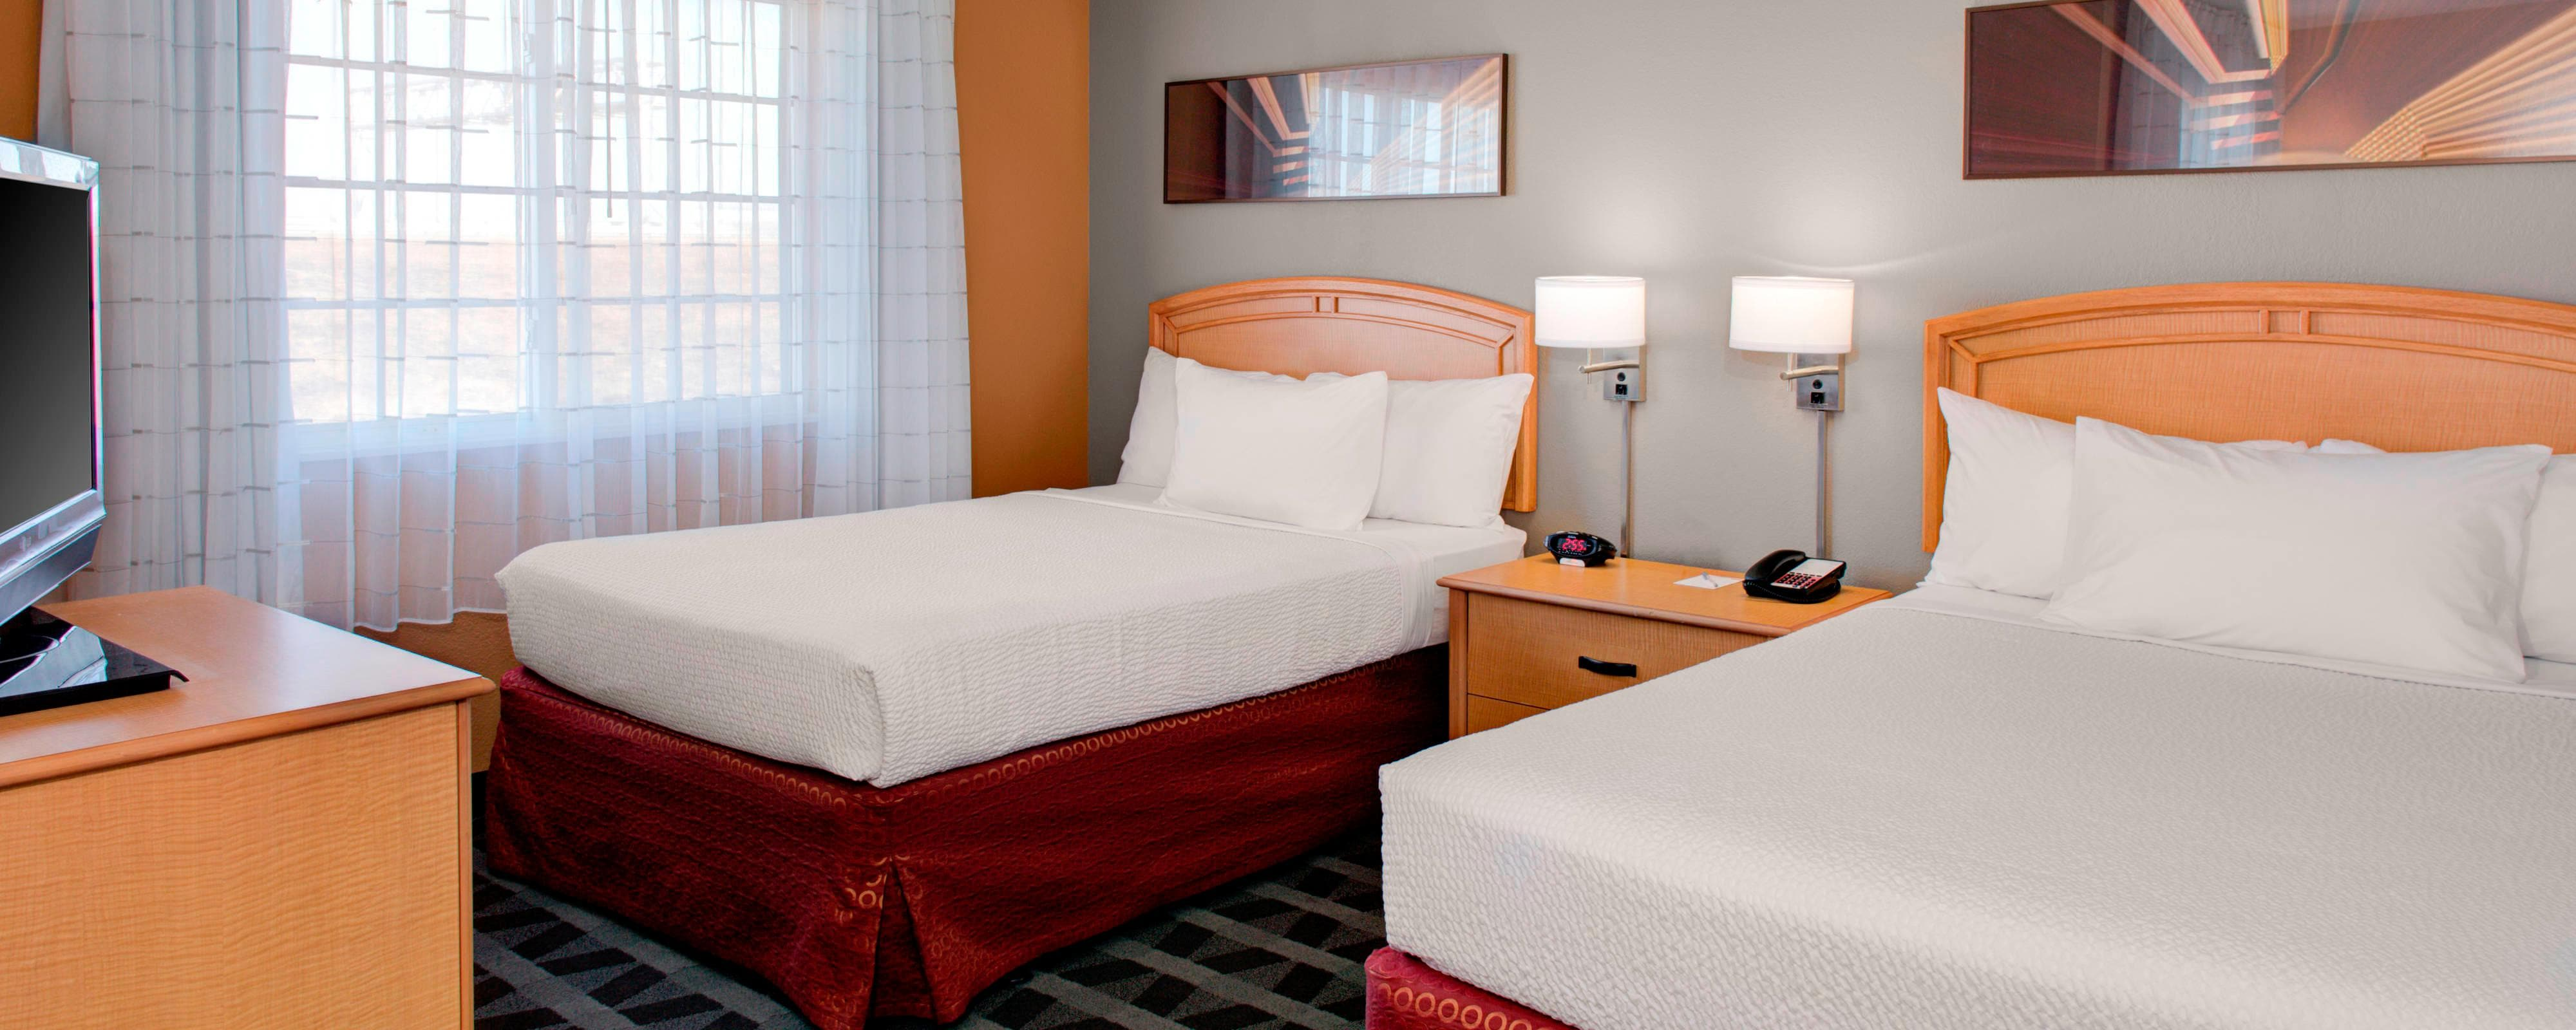 Luxury Extended Stay Hotels With 2 Bedrooms Wichita Ks